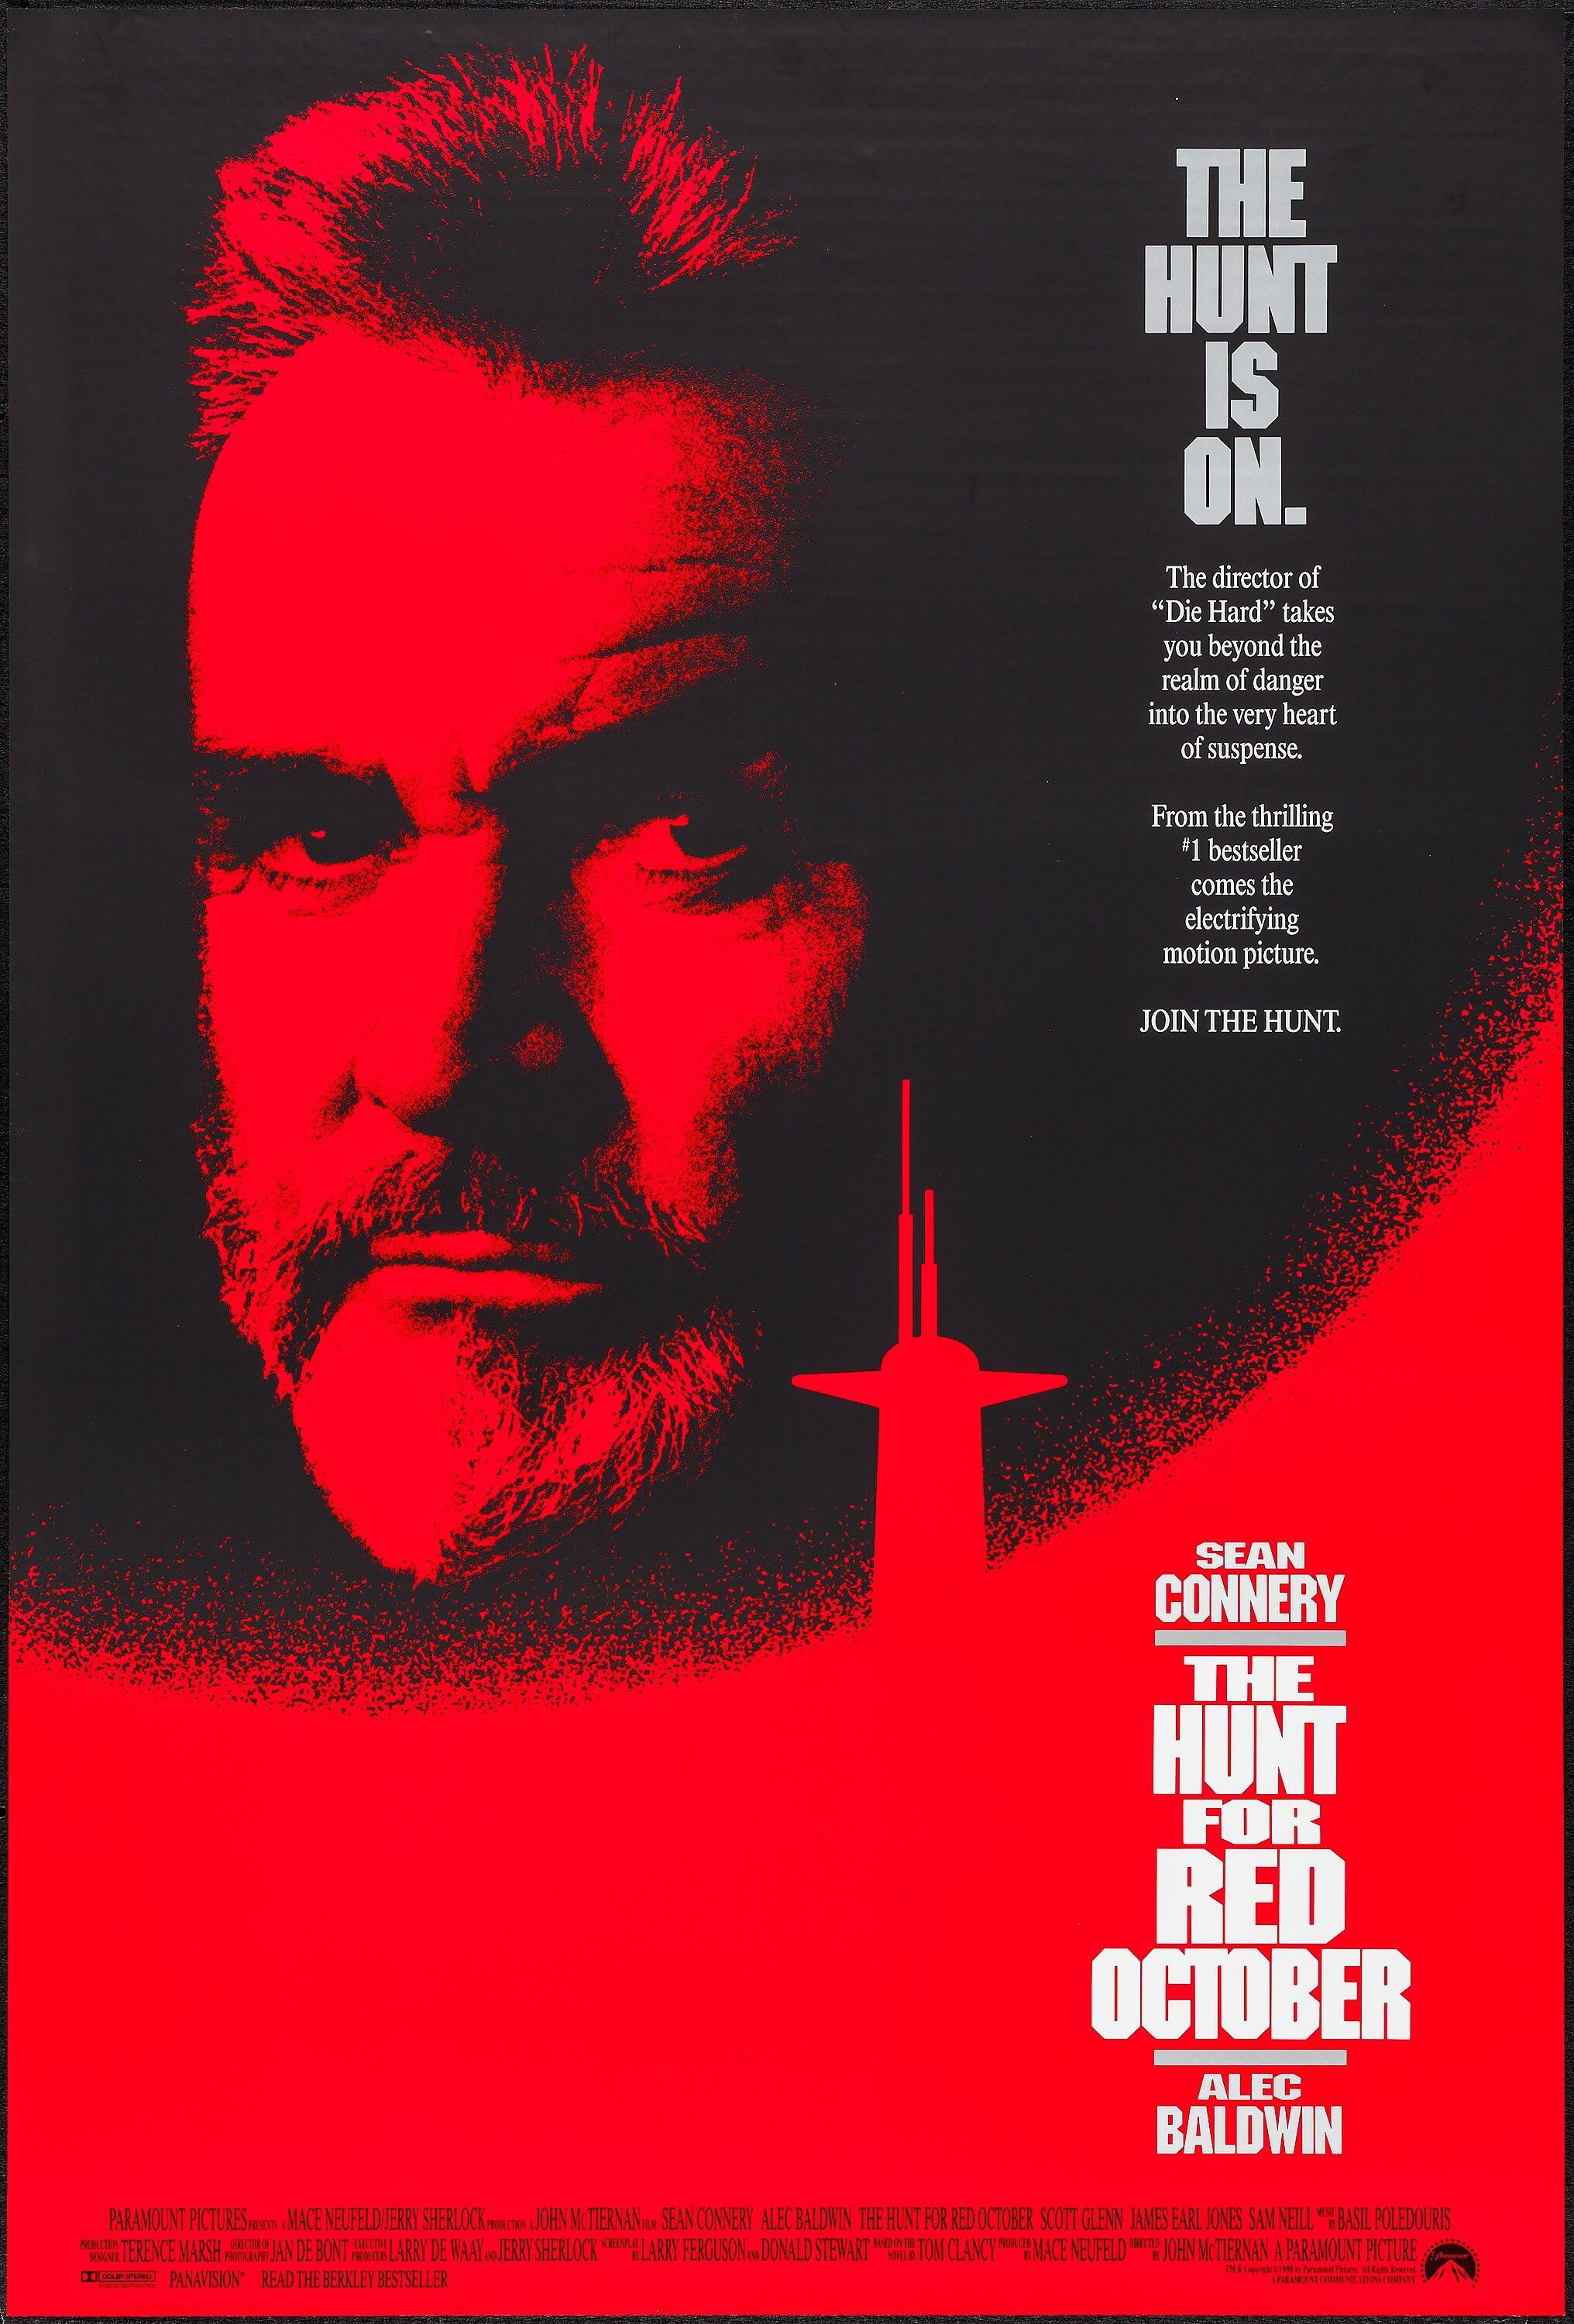 The Hunt For Red October 1990 Red October Movie Movie Posters Tv Series Online